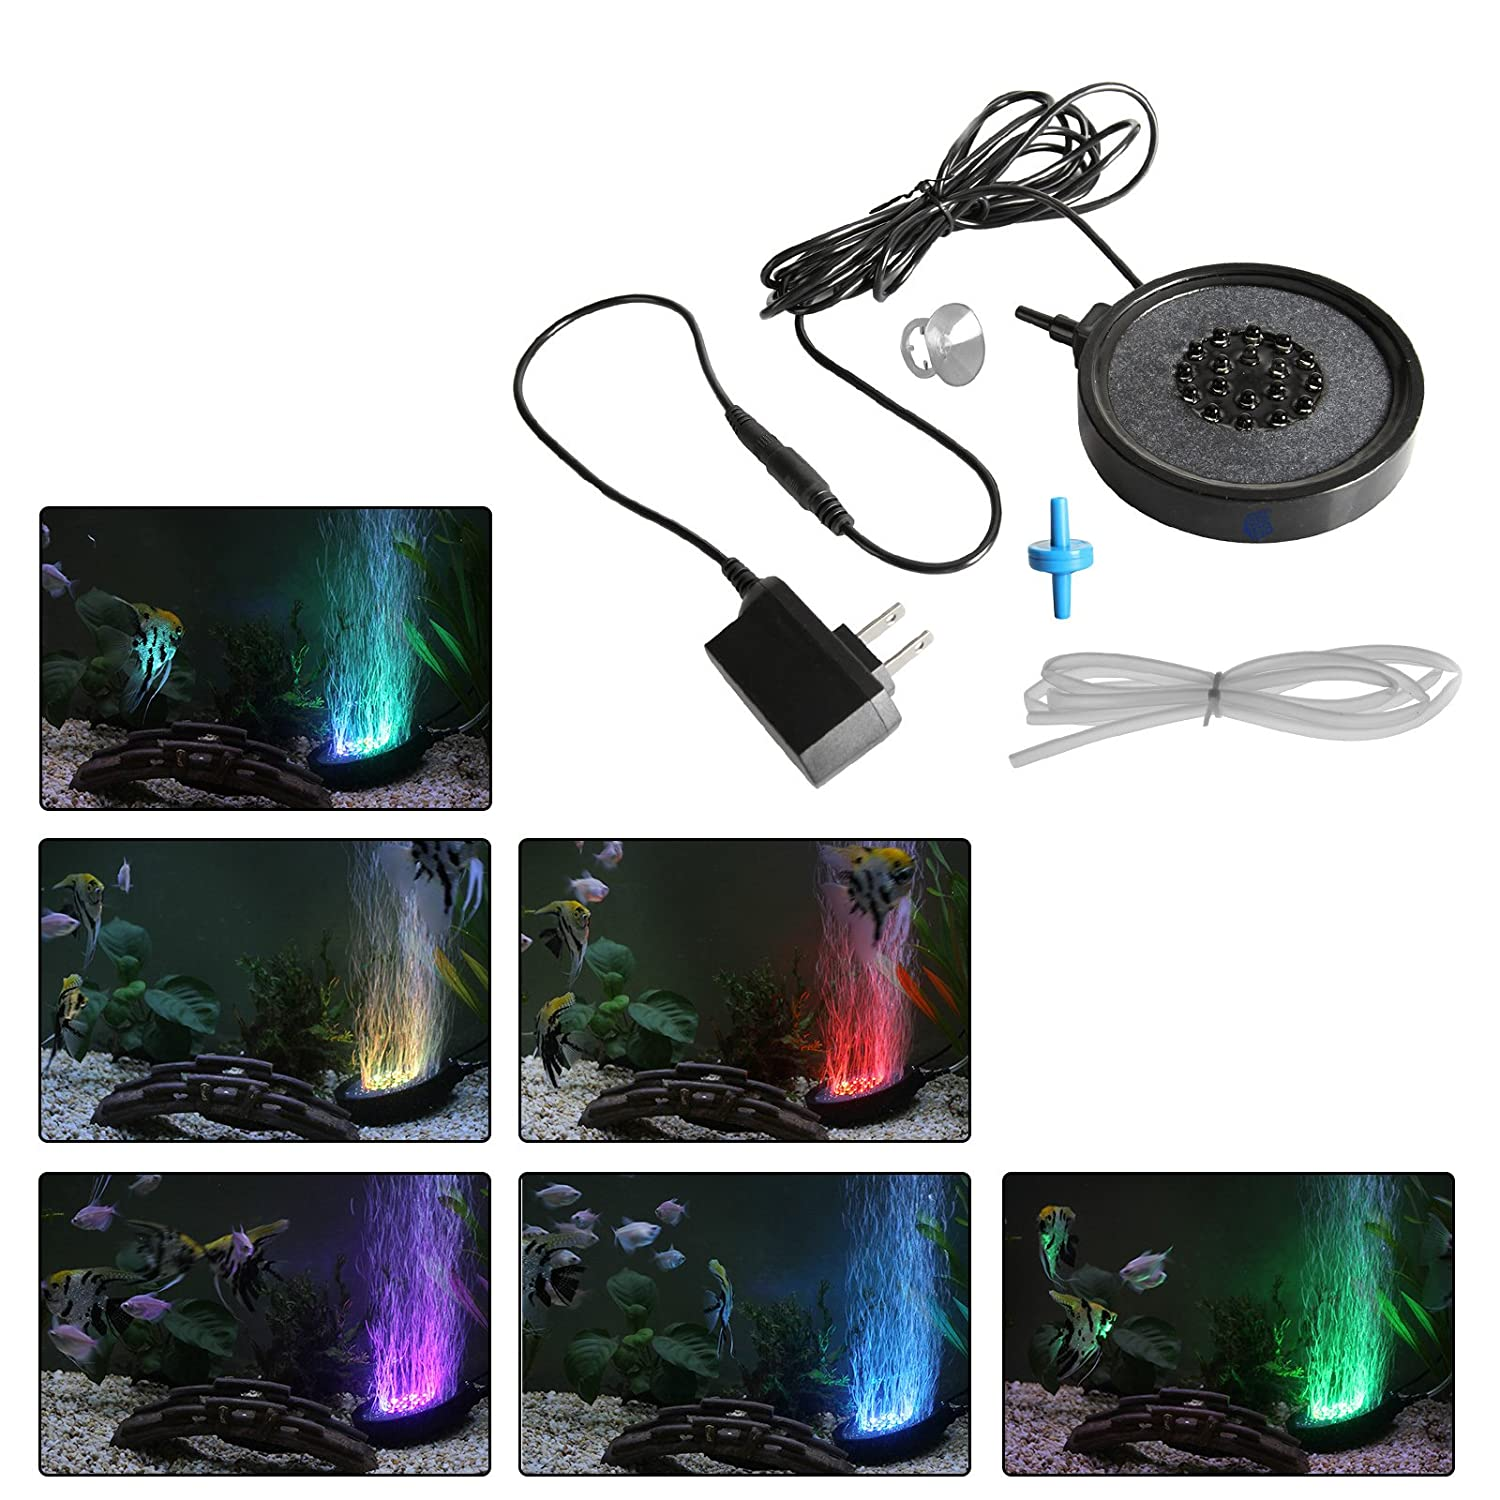 GBGS Air Stone with LED Air Bubble Disk with 12 RGB LED Light for Fish Tank Aquarium